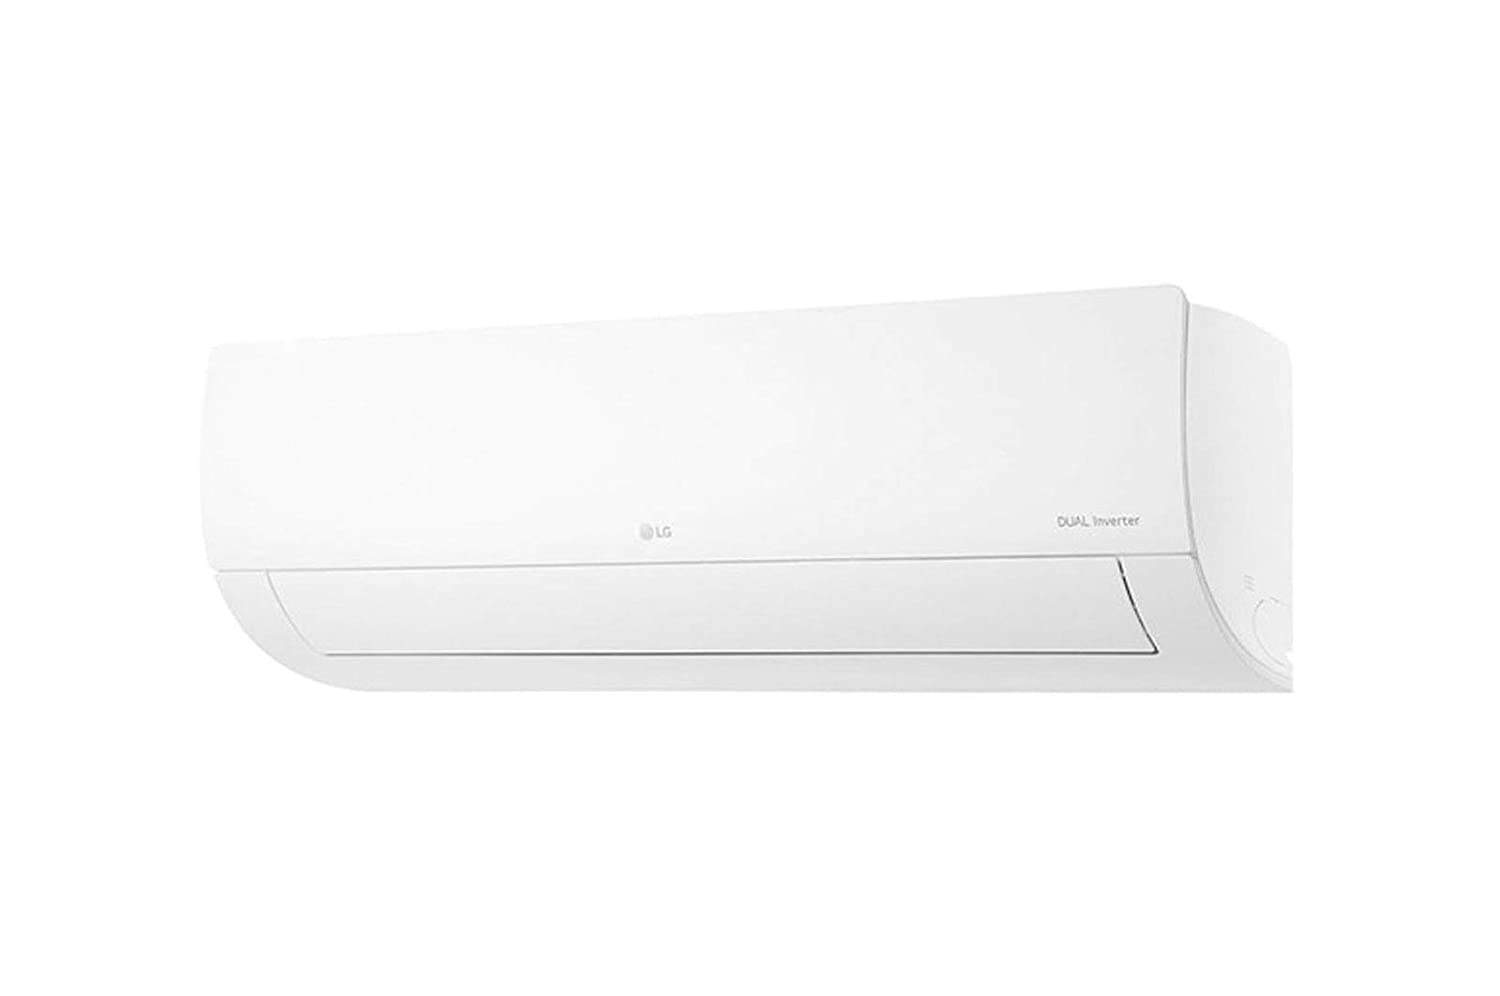 LG 1.0 TR 5 Star Inverter Split AC (Copper, LS-Q12CNZD, White,Convertible 4-in-1 Cooling)